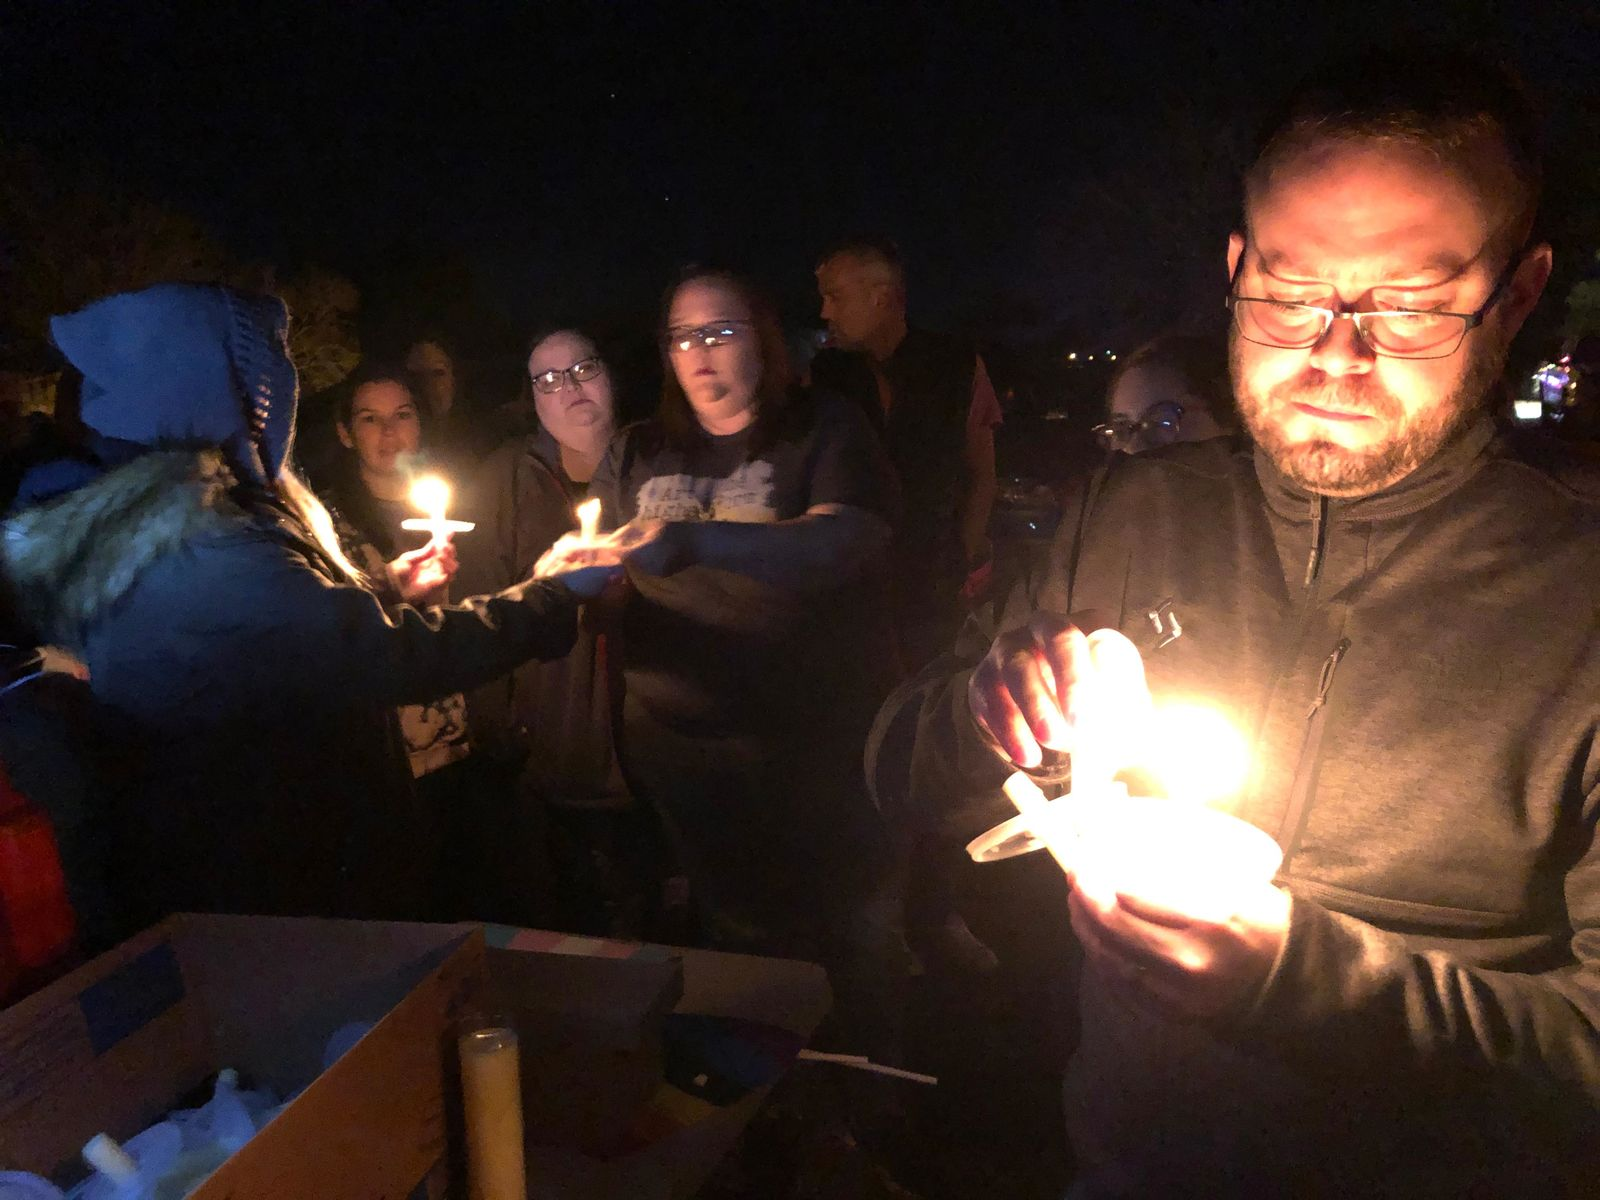 Vigil for Dustin Parker, a McAlester taxi cab driver who was found shot New Year's Day. Friday, Jan. 3, 2020. (Mummolo/KTUL)